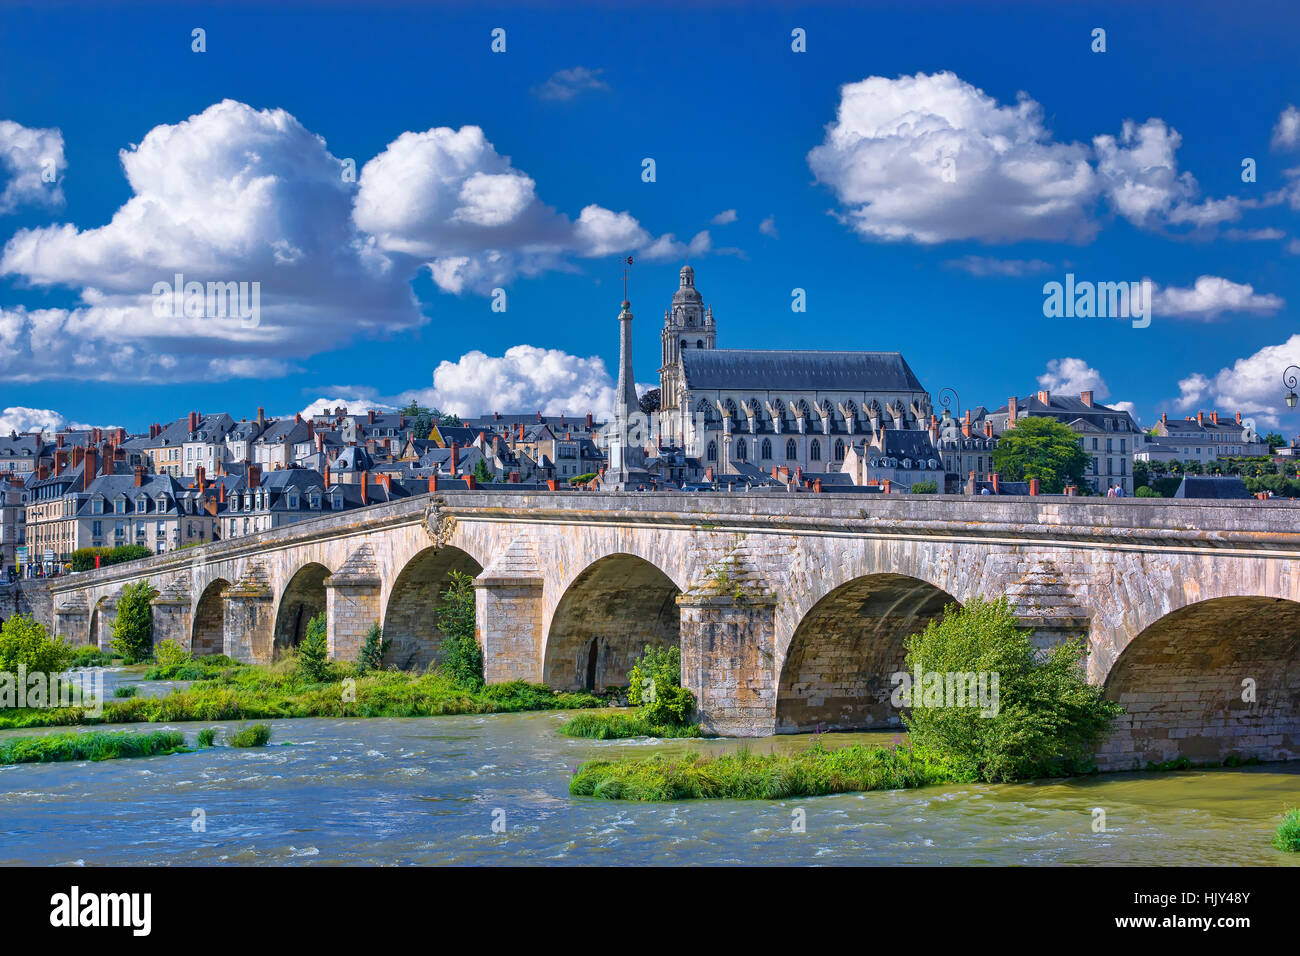 the town of Blois and Loire river, France - Stock Image